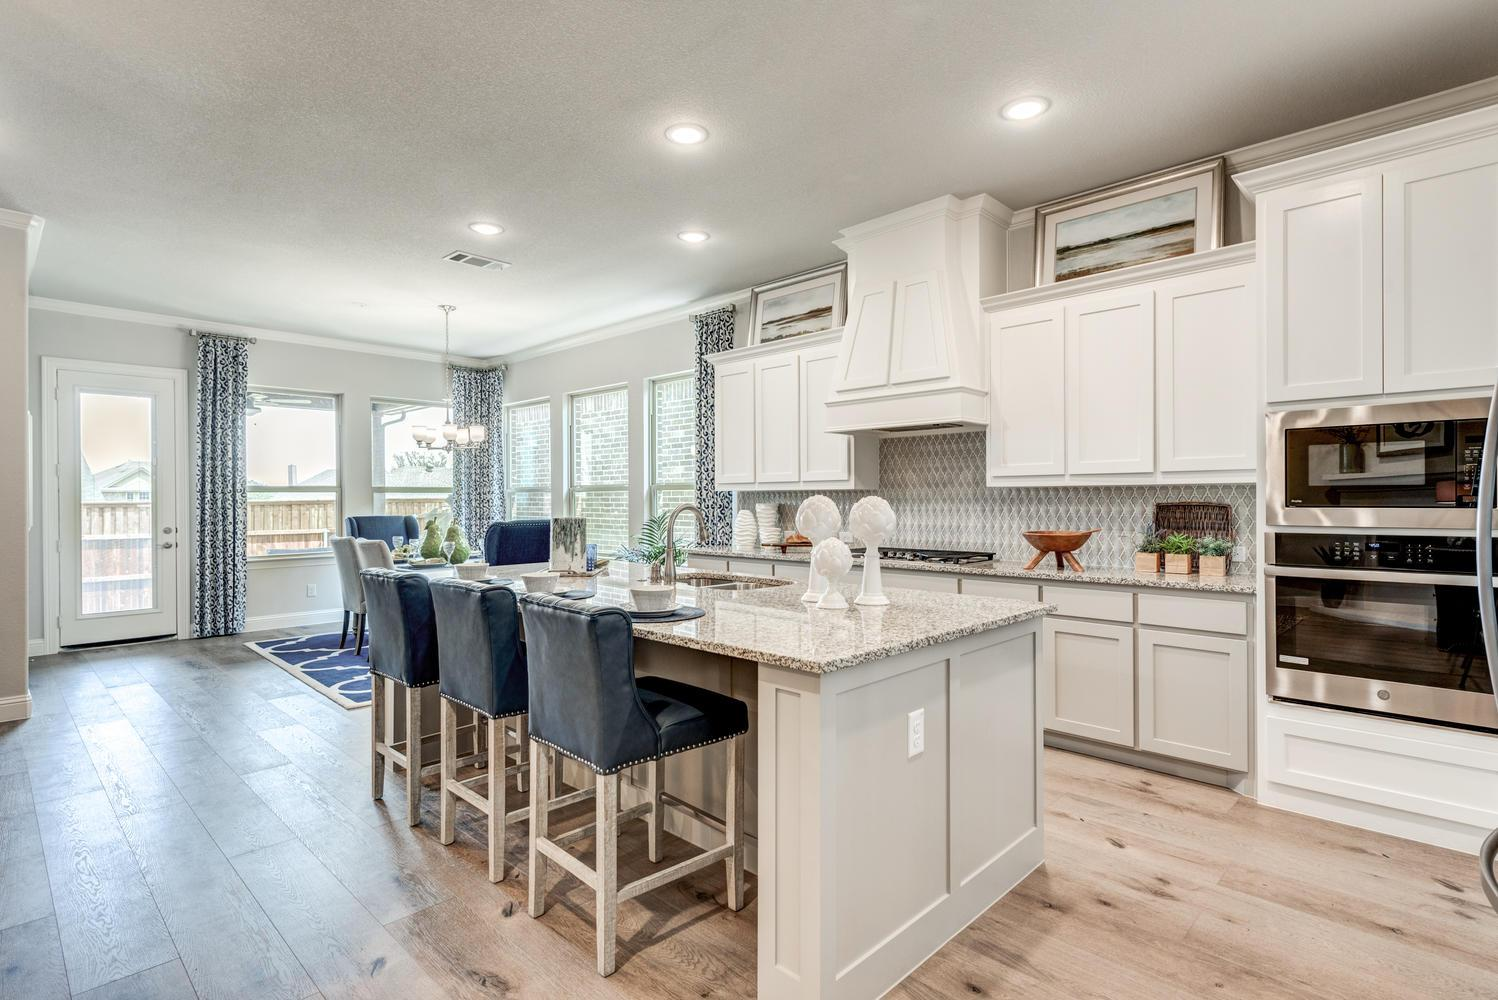 Kitchen featured in the Naples | Villa By Our Country Homes  in Fort Worth, TX